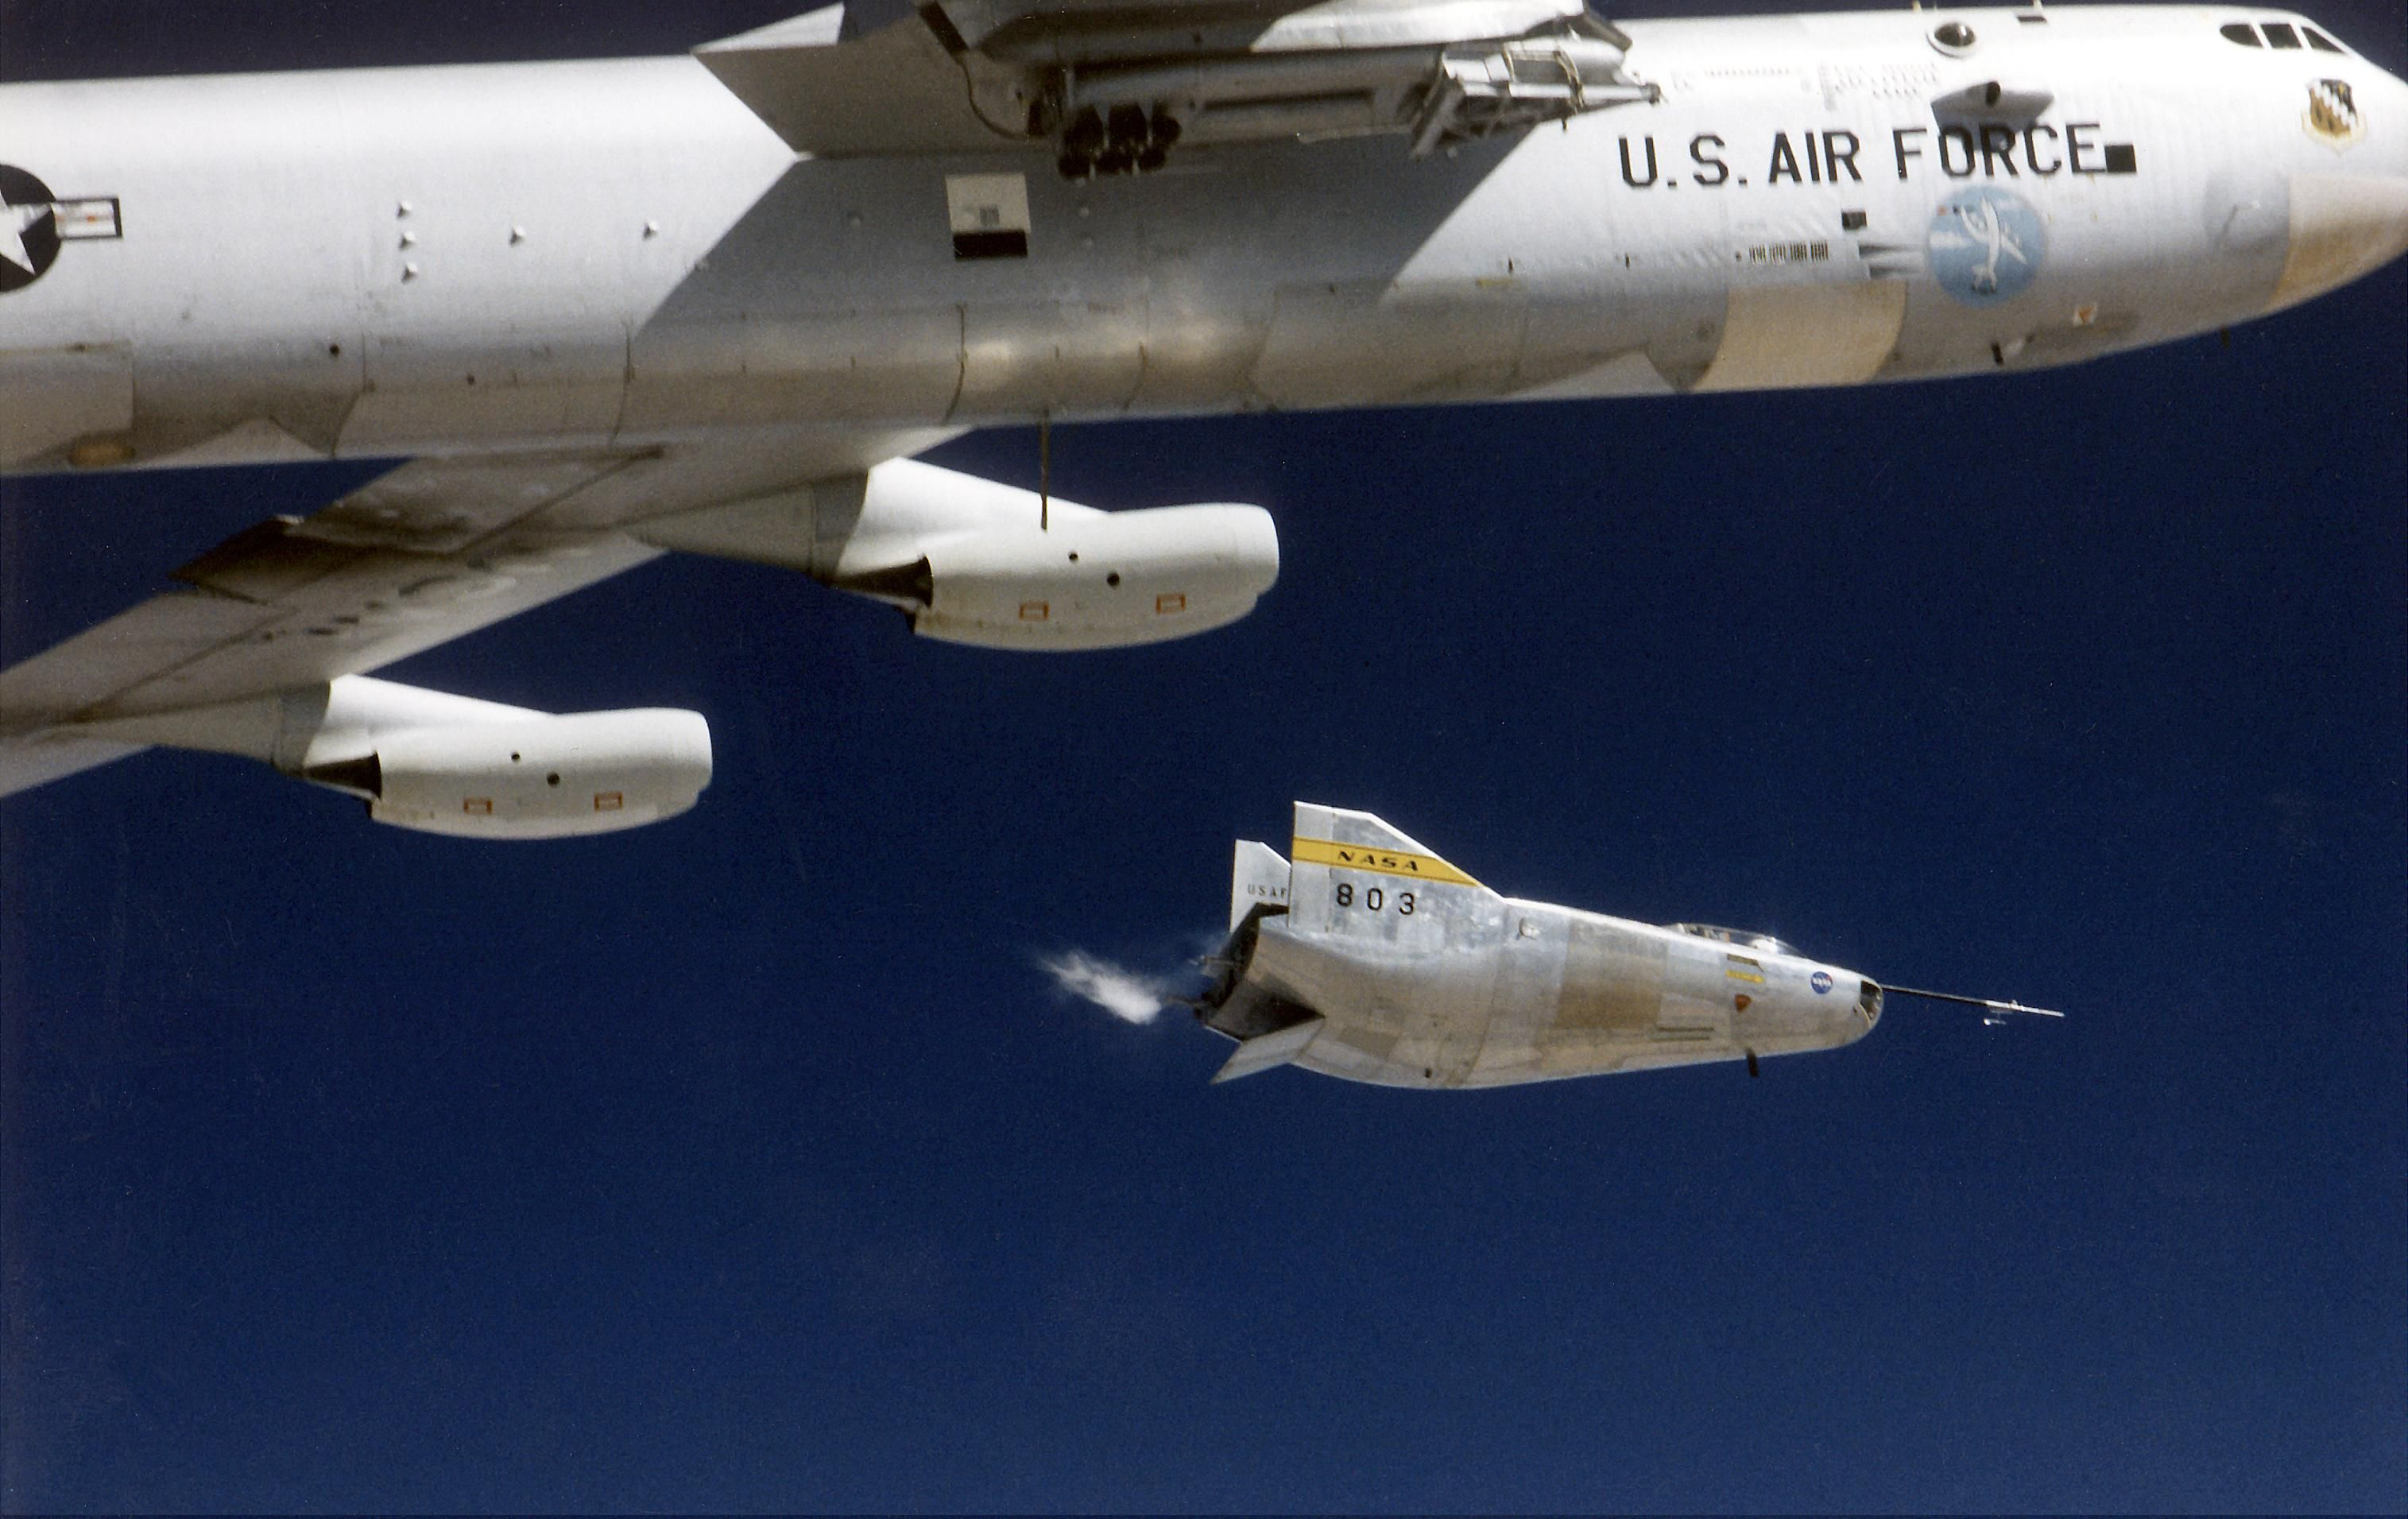 UFOs From Earth: 10 Experimental Airplanes That Look Like They're From Another Planet